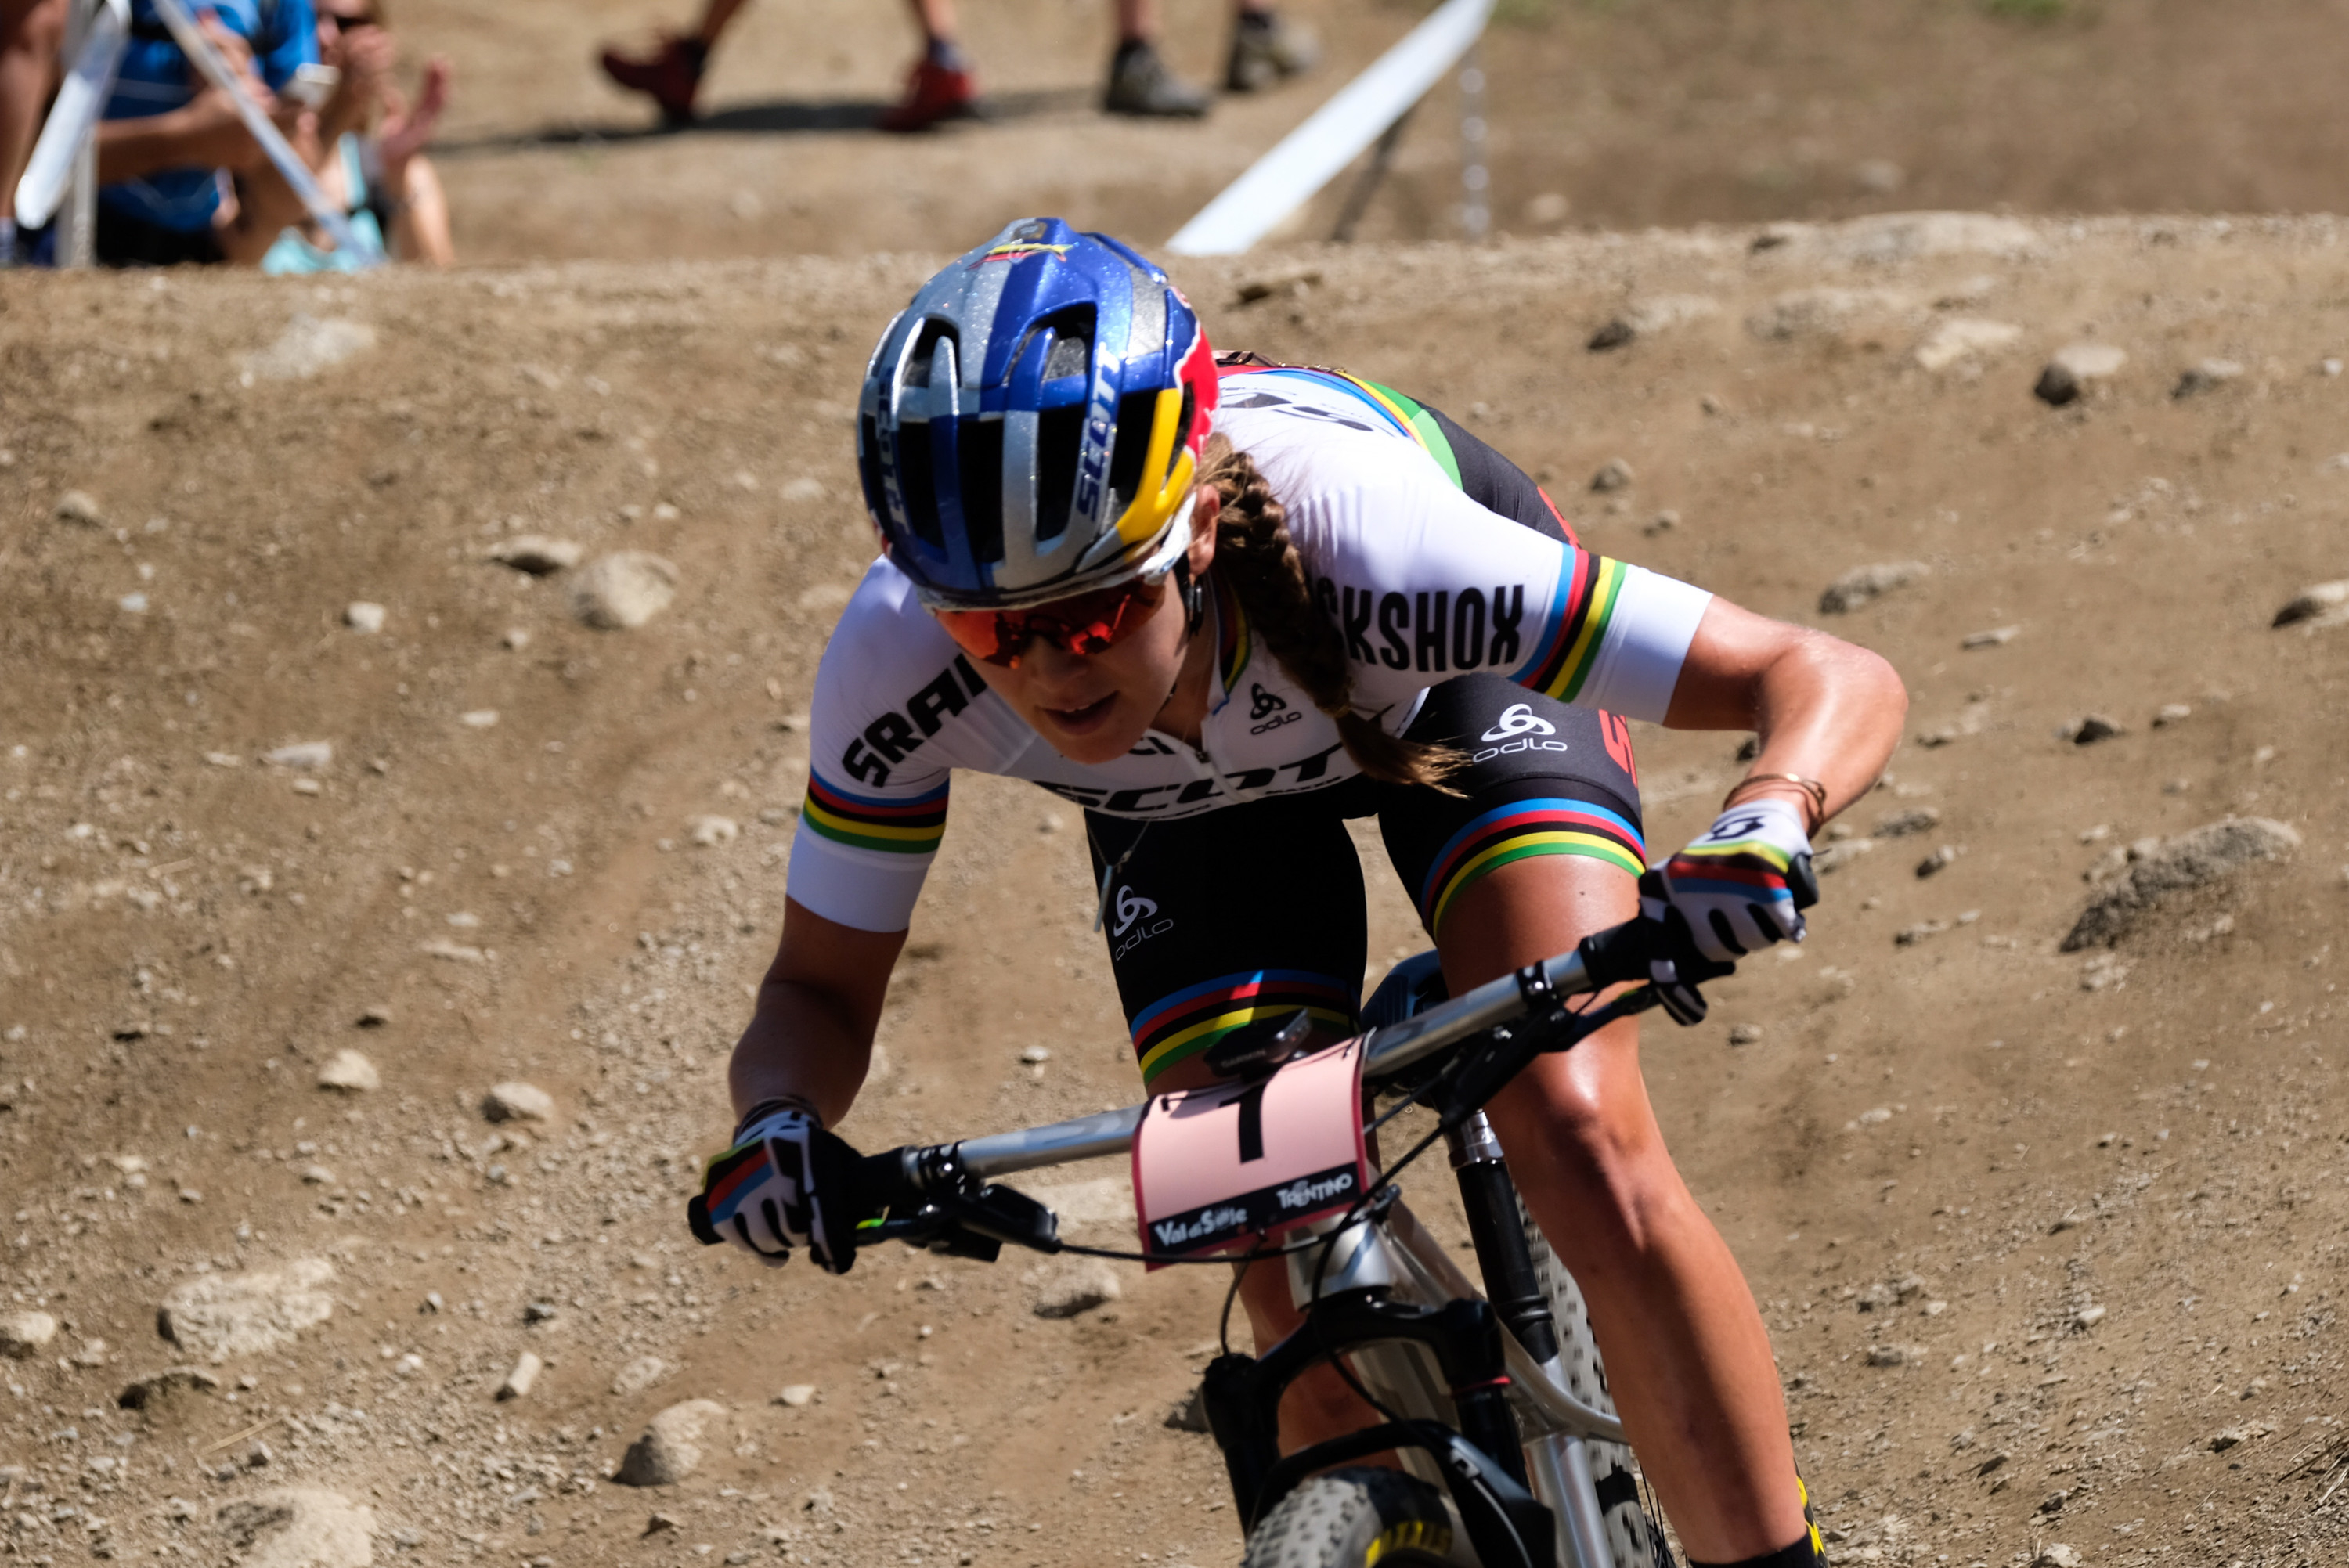 Kate Courtney mountain biking on dirt trail at a UCI World Cup